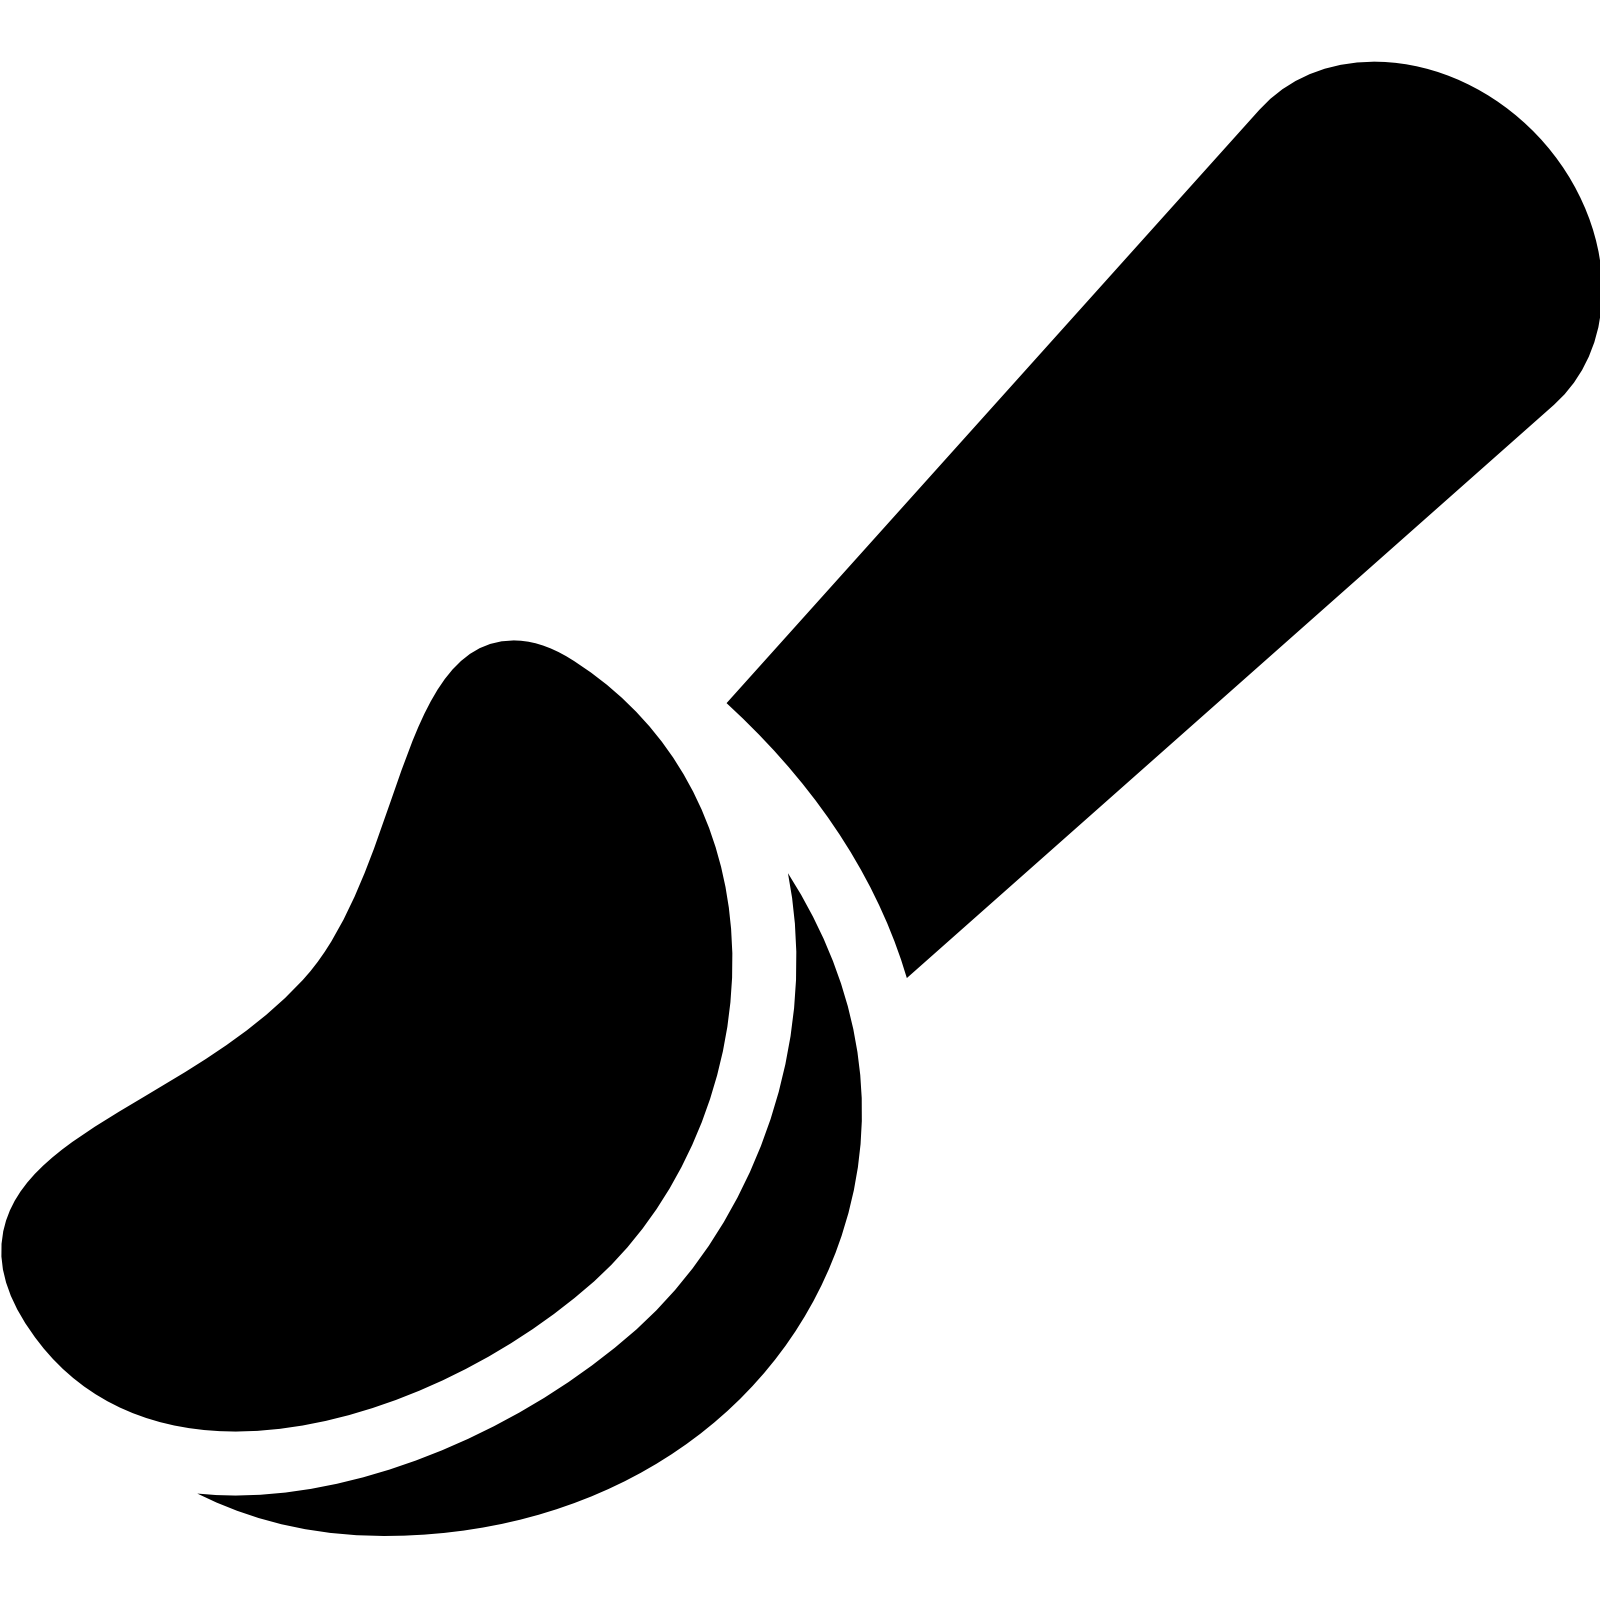 Ice tools clipart #10